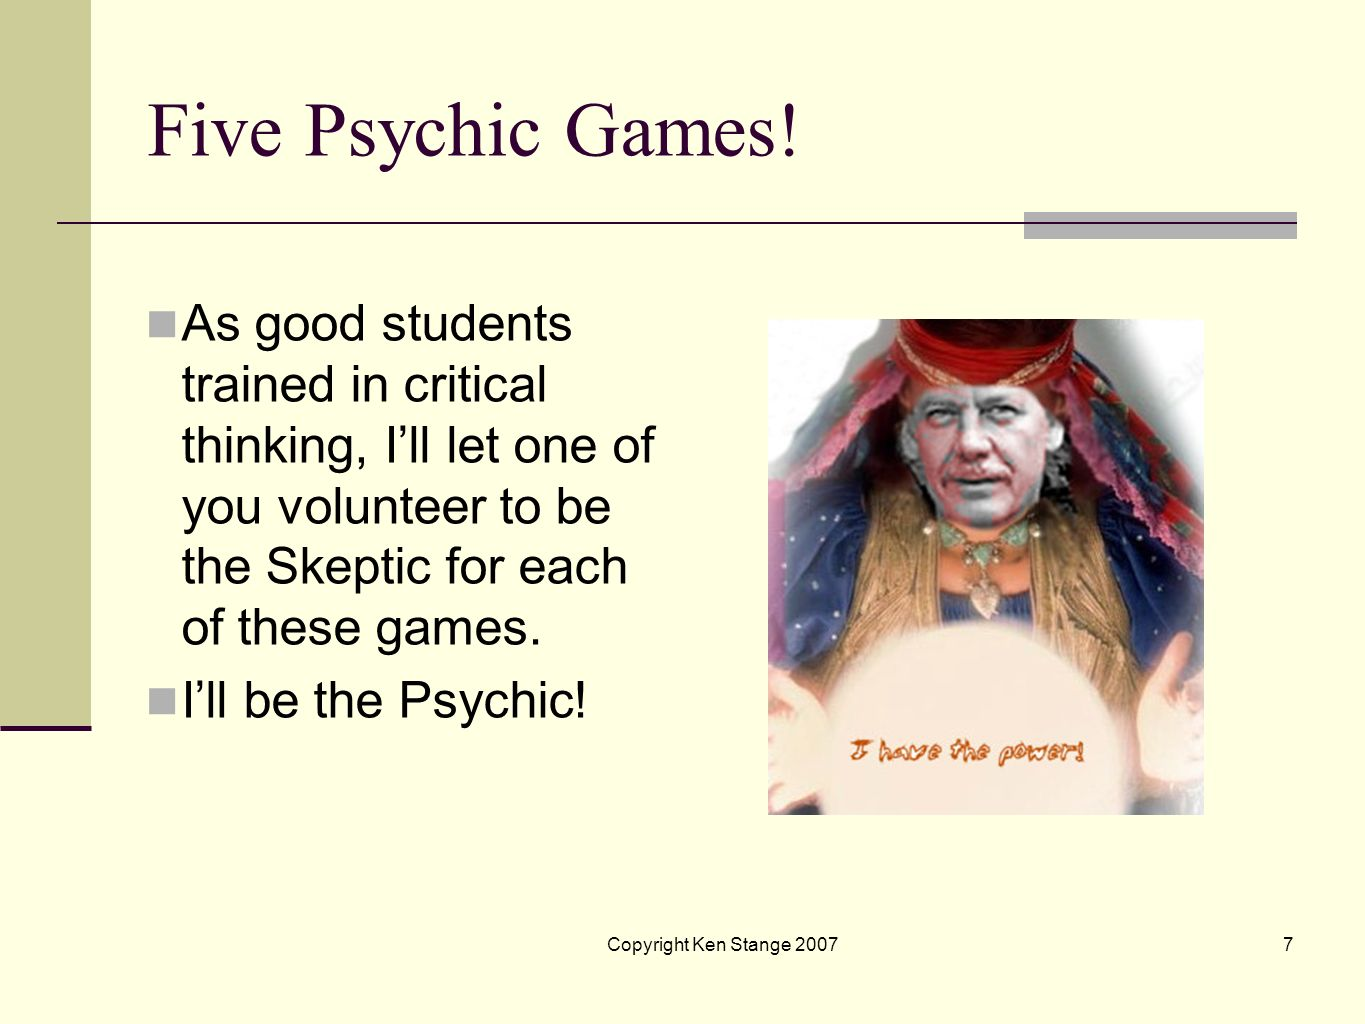 Five Psychic Games! As good students trained in critical thinking, I'll let one of you volunteer to be the Skeptic for each of these games.